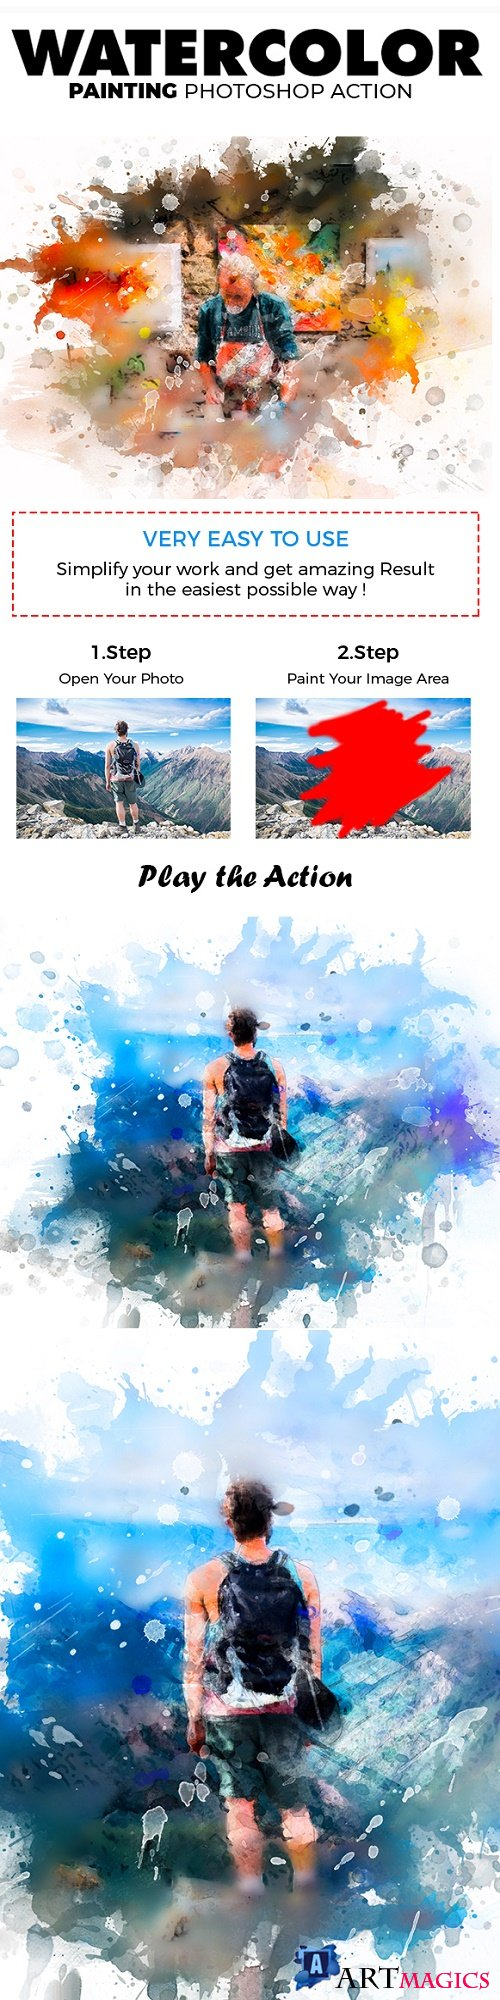 Watercolor Painting Photoshop Action - 21875063